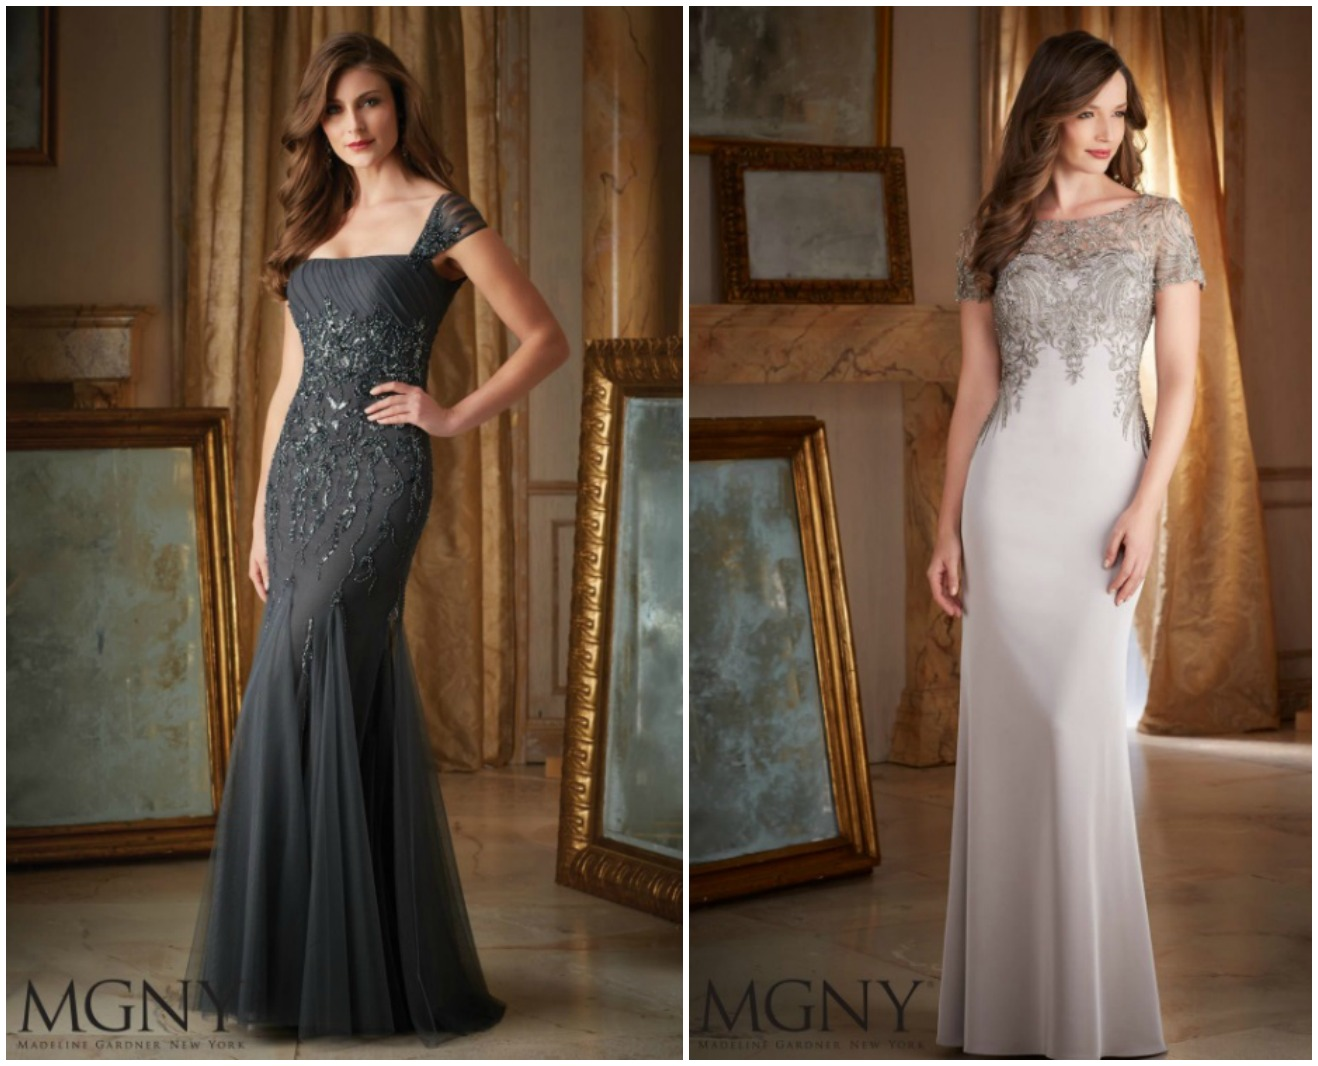 2926e051e53 Brides of America Online Store  New Mother of the Bride Dresses at ...